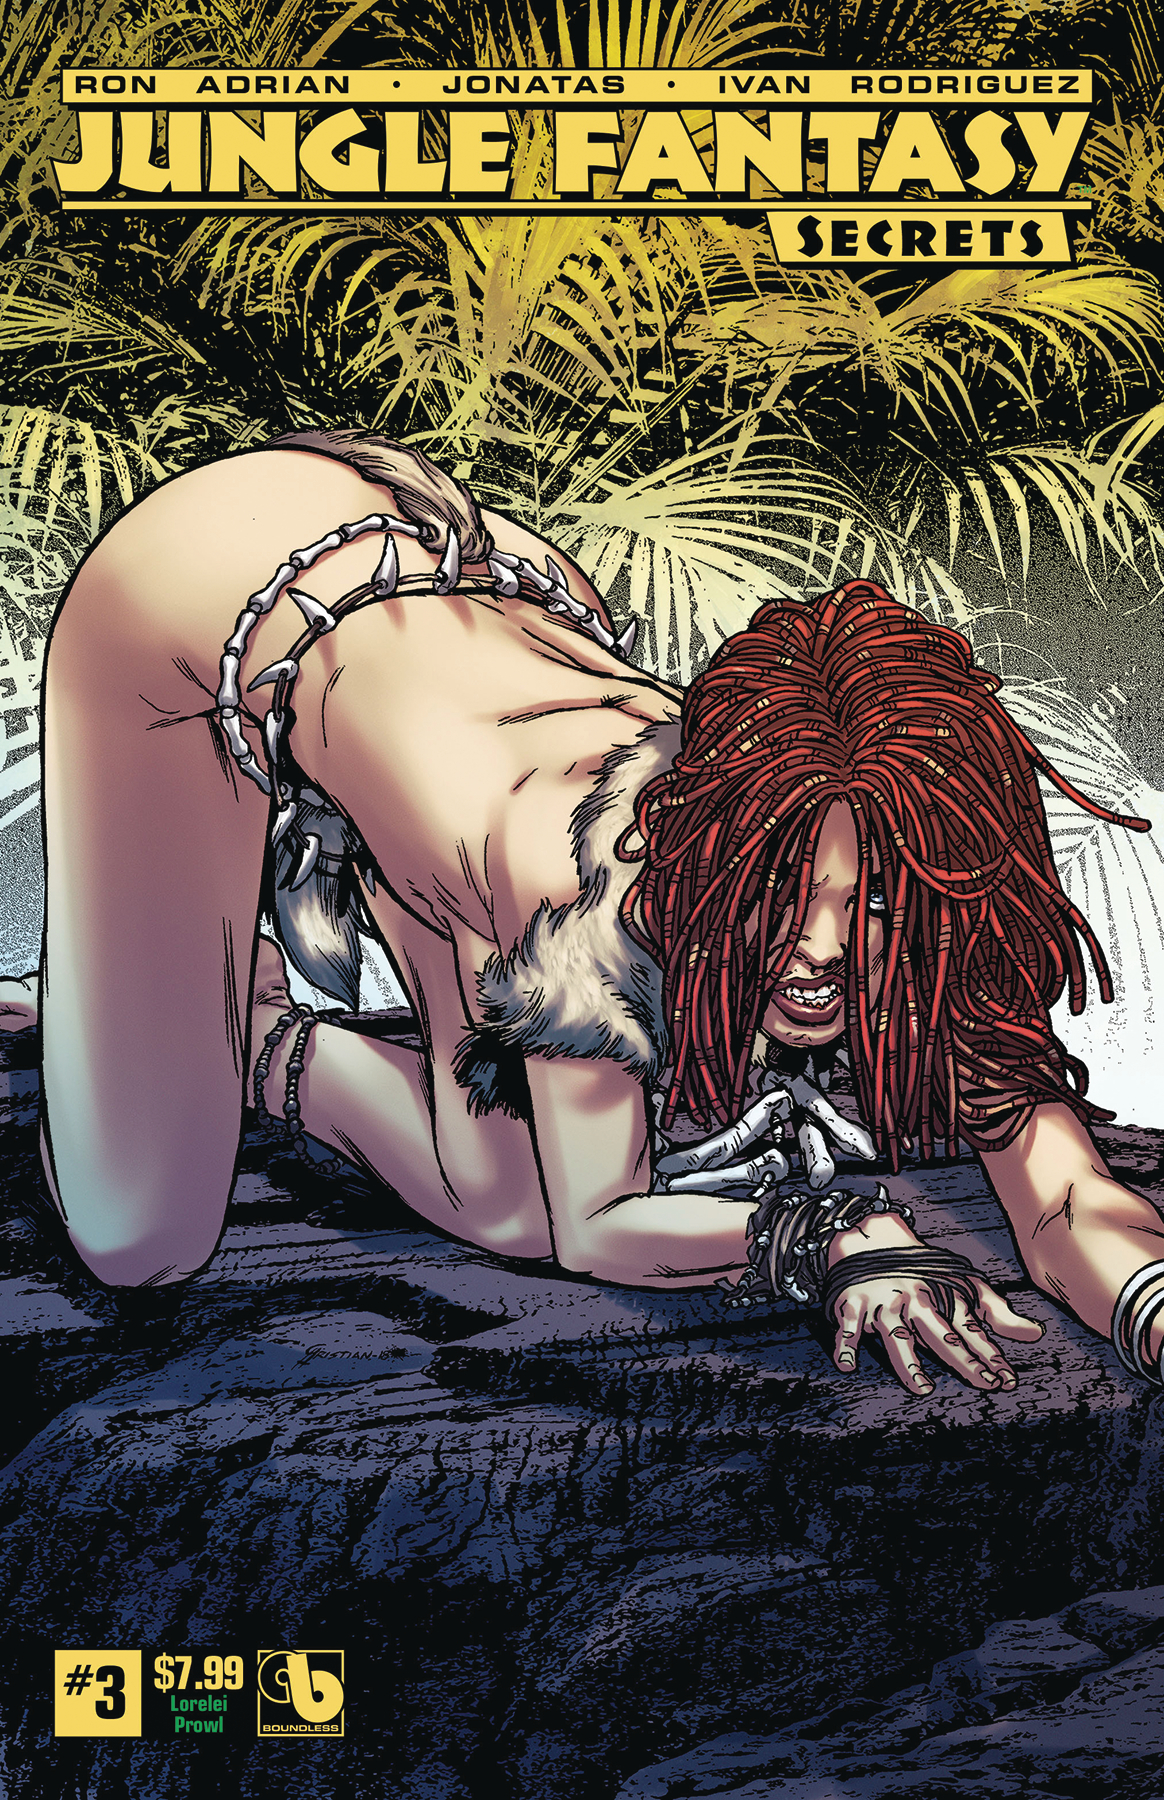 JUNGLE FANTASY SECRETS #3 LORELEI PROWL (MR)